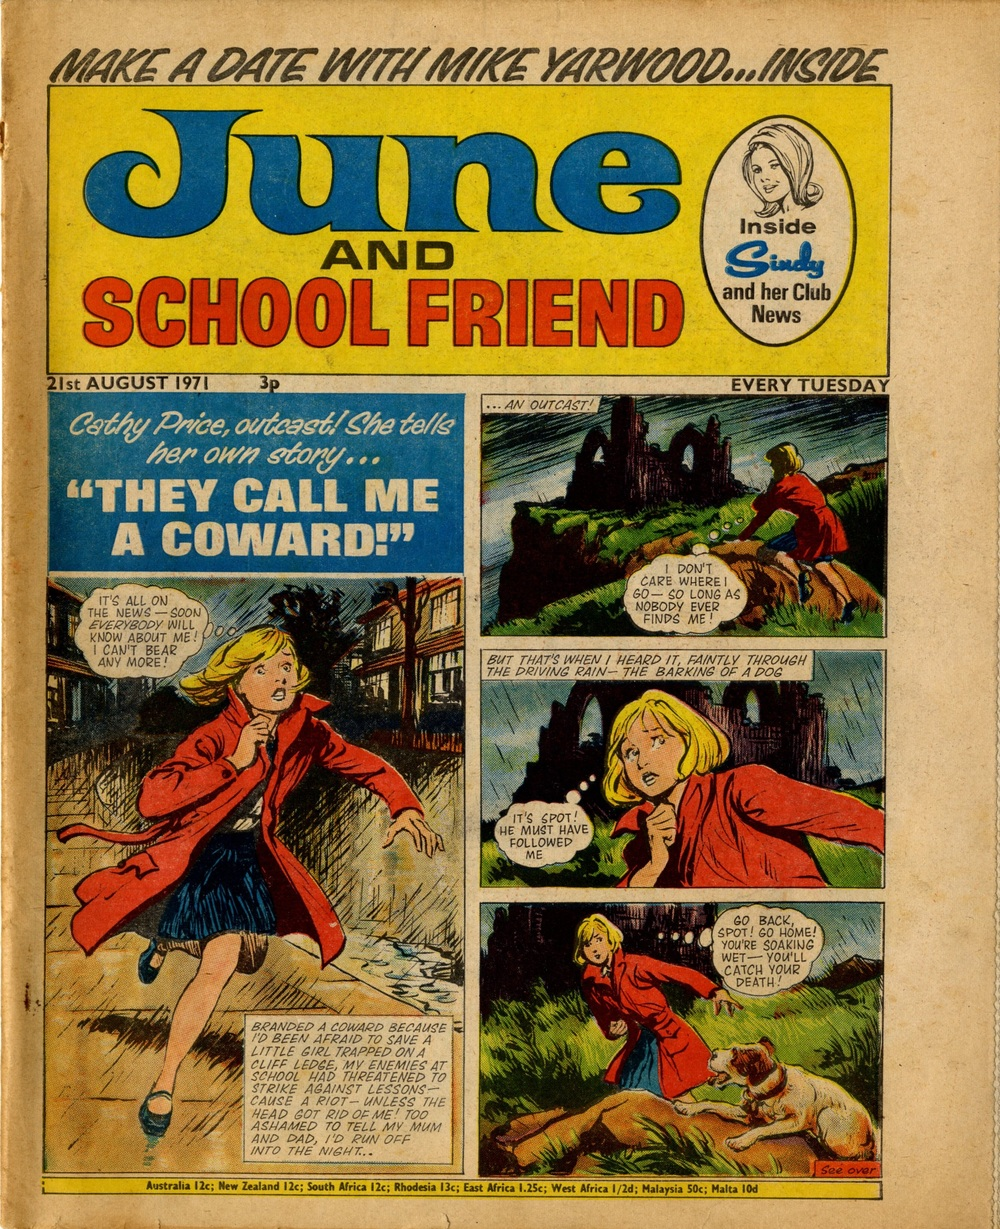 21 August 1971: June and School Friend ('They Call Me a Coward': Leslie Otway (artist))